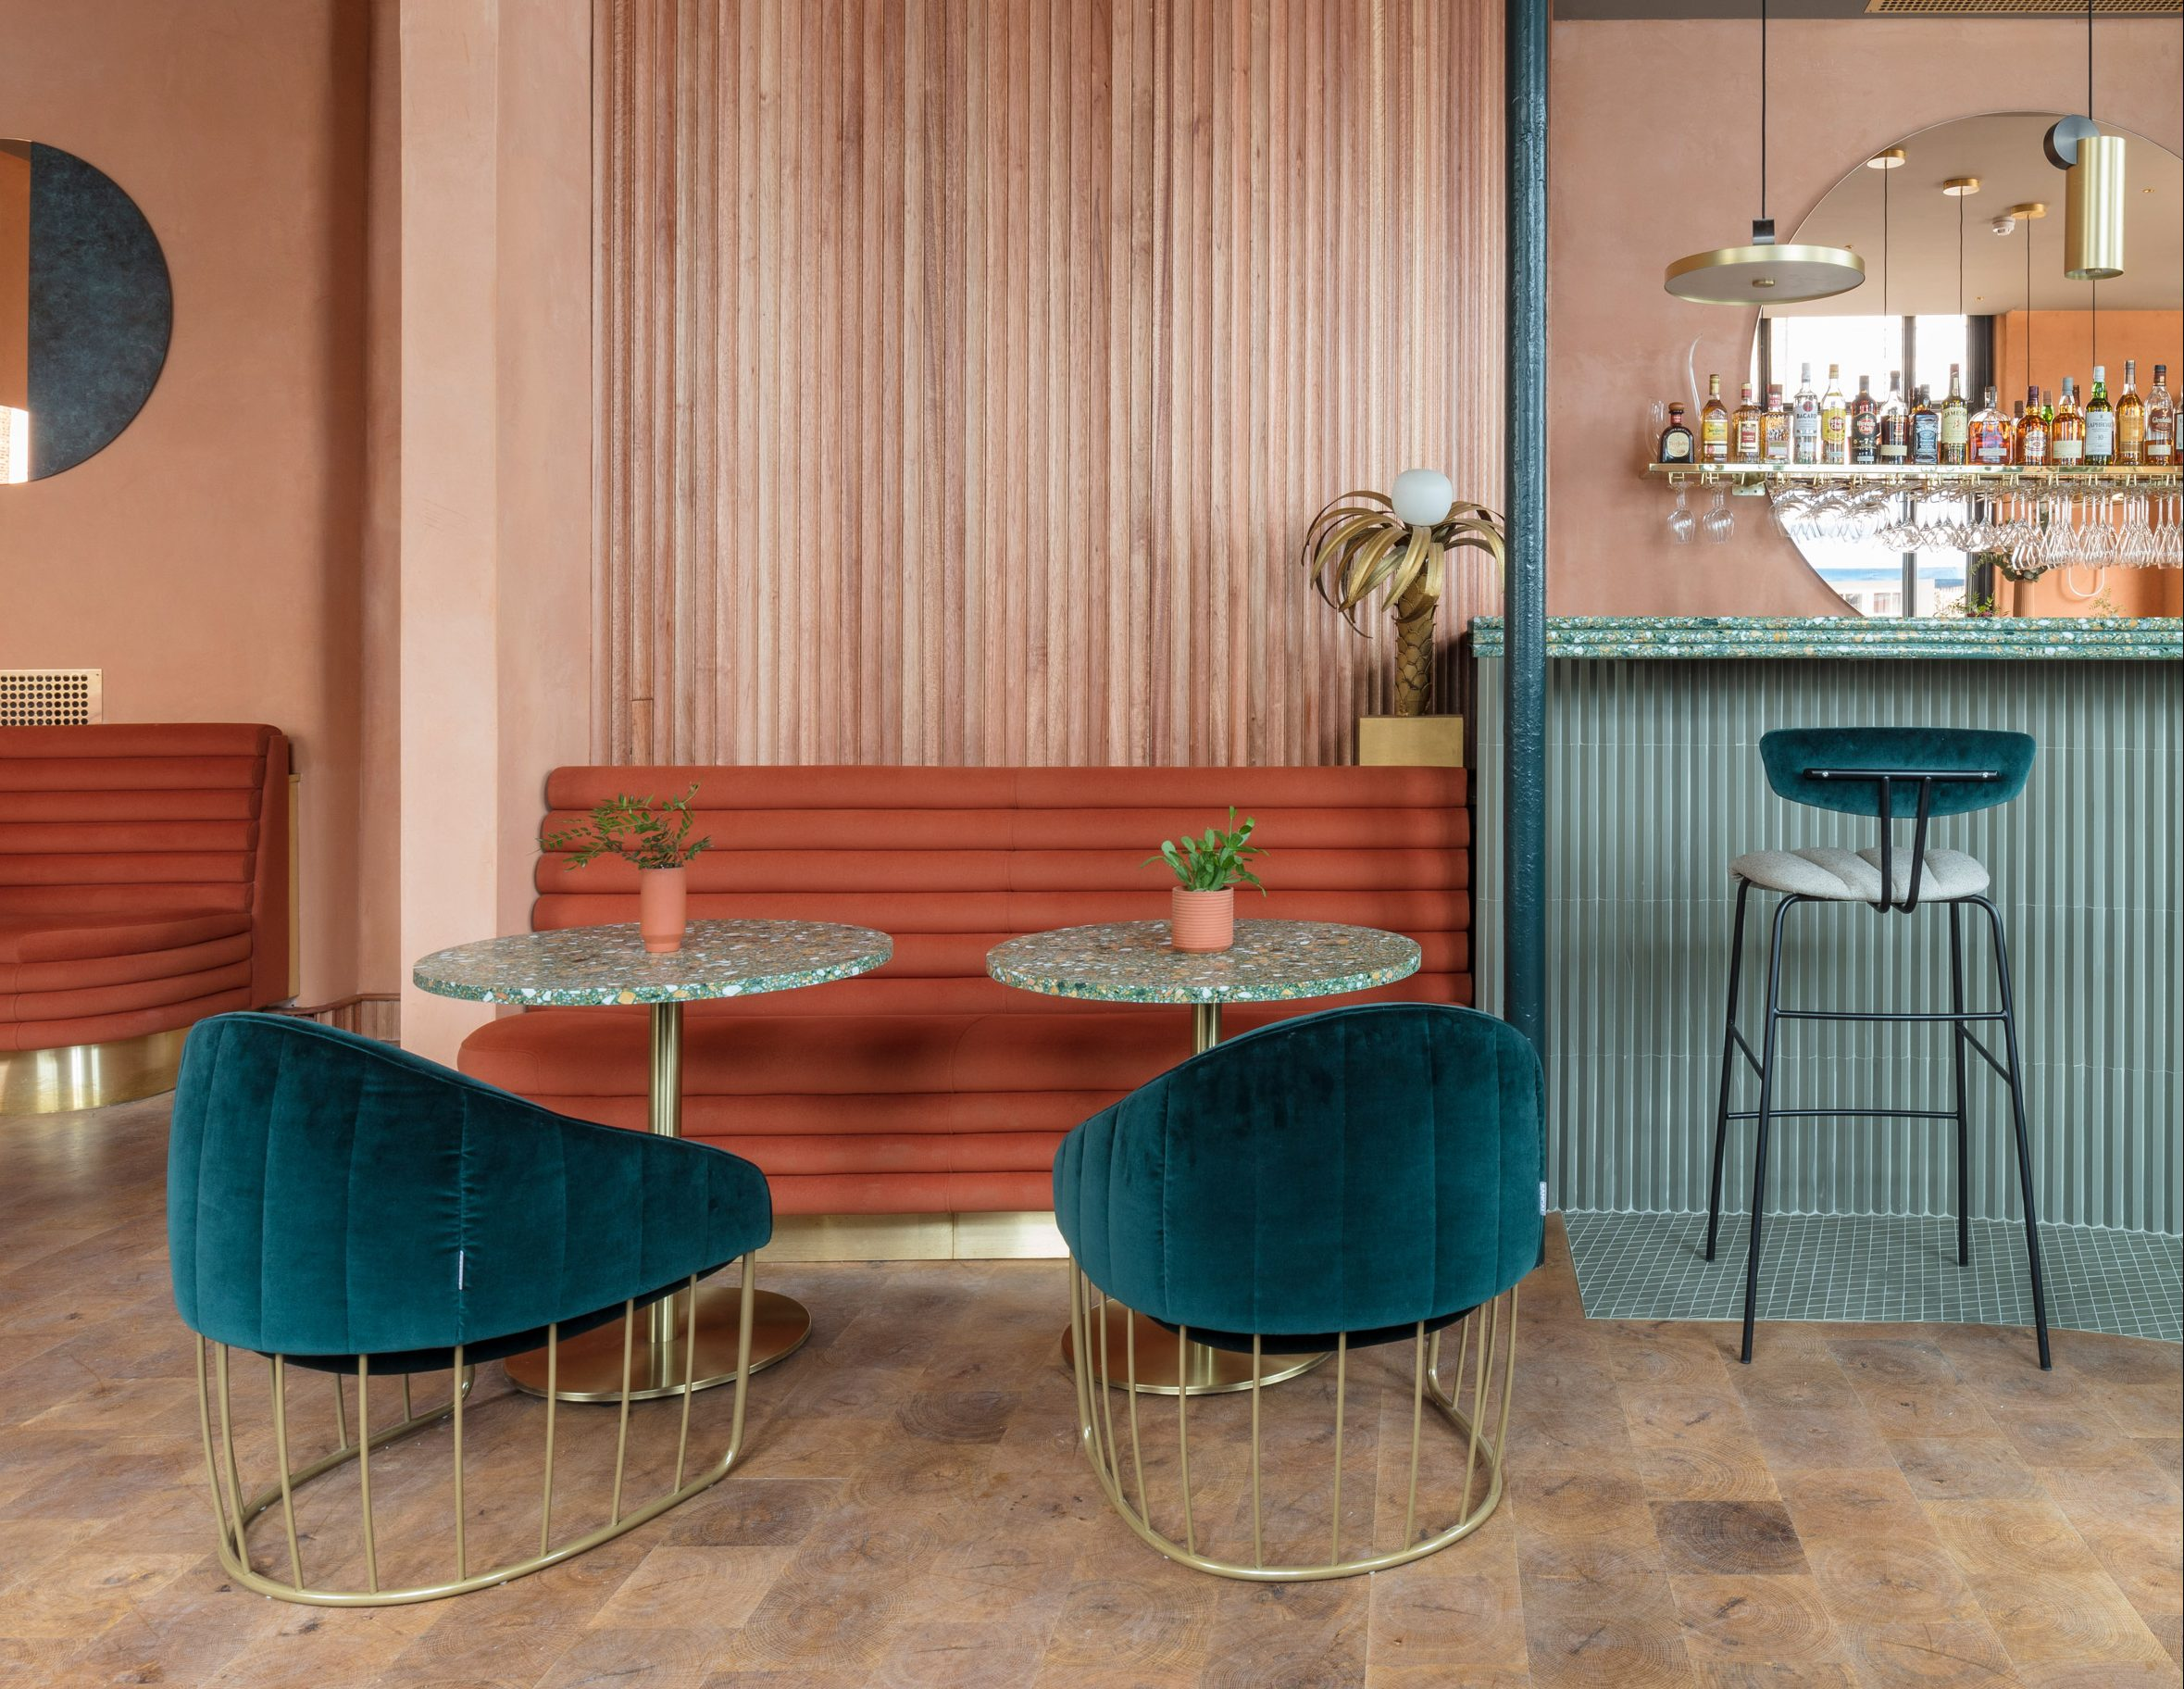 Here comes the sun: Omar's Place by Sella Concept